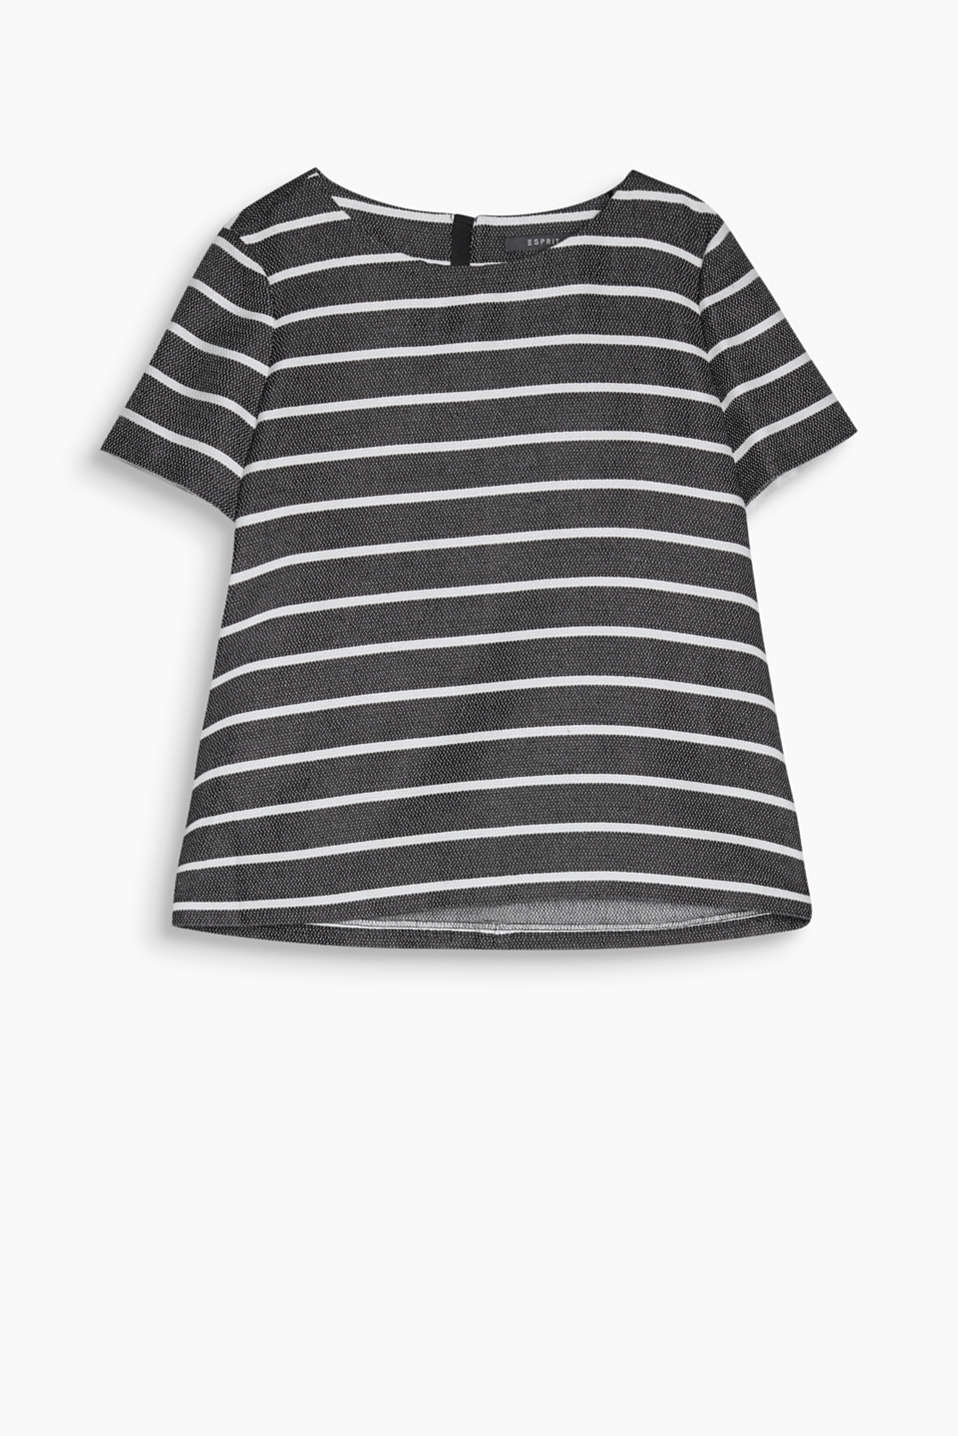 Stripes and texture – a strong combination! Casual blouse with a rear zip, made of blended cotton